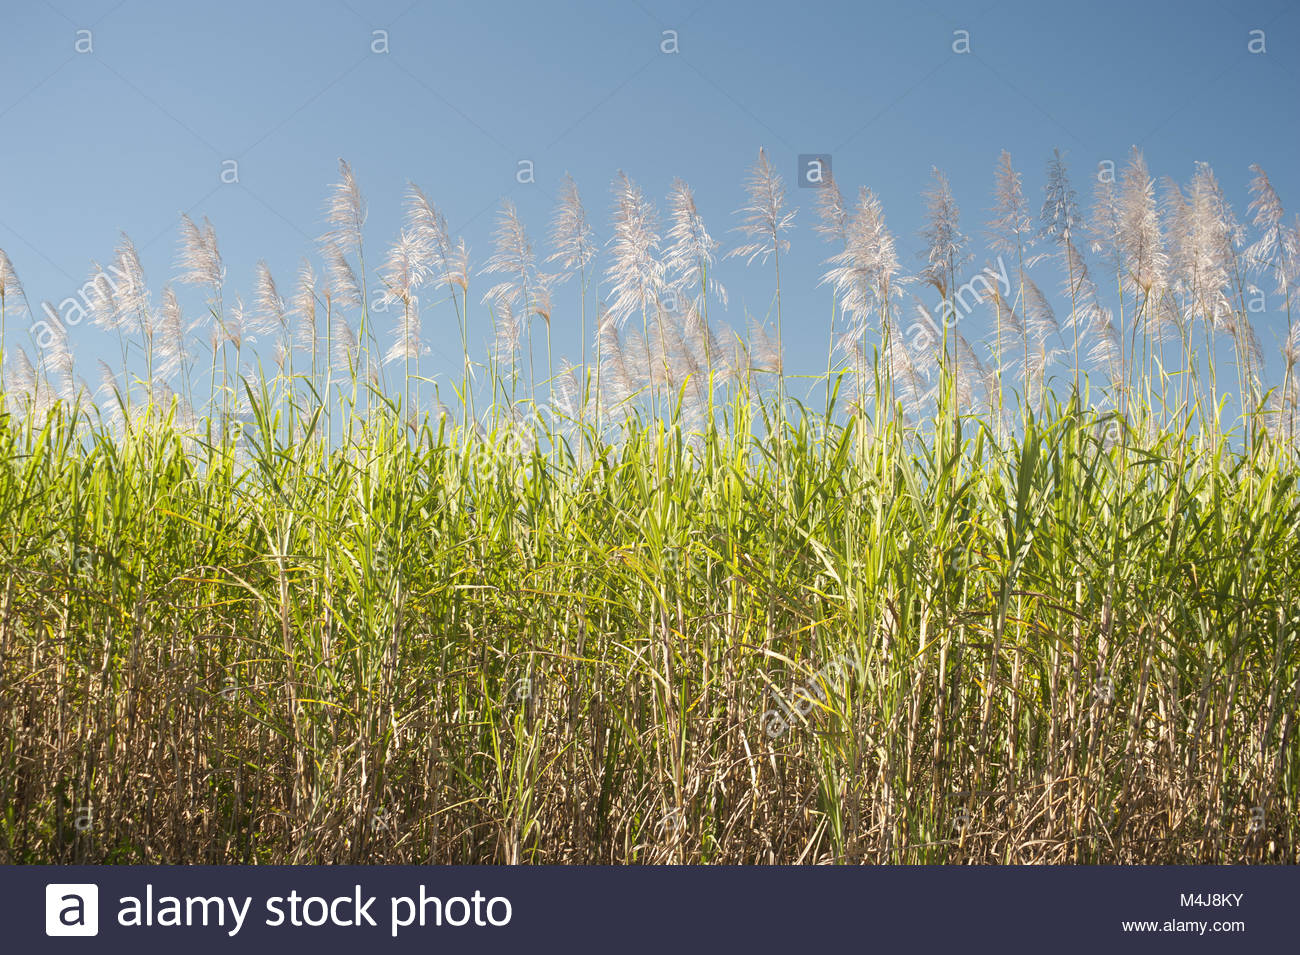 Sugarcane canes growing in an agricultural field - Stock Image